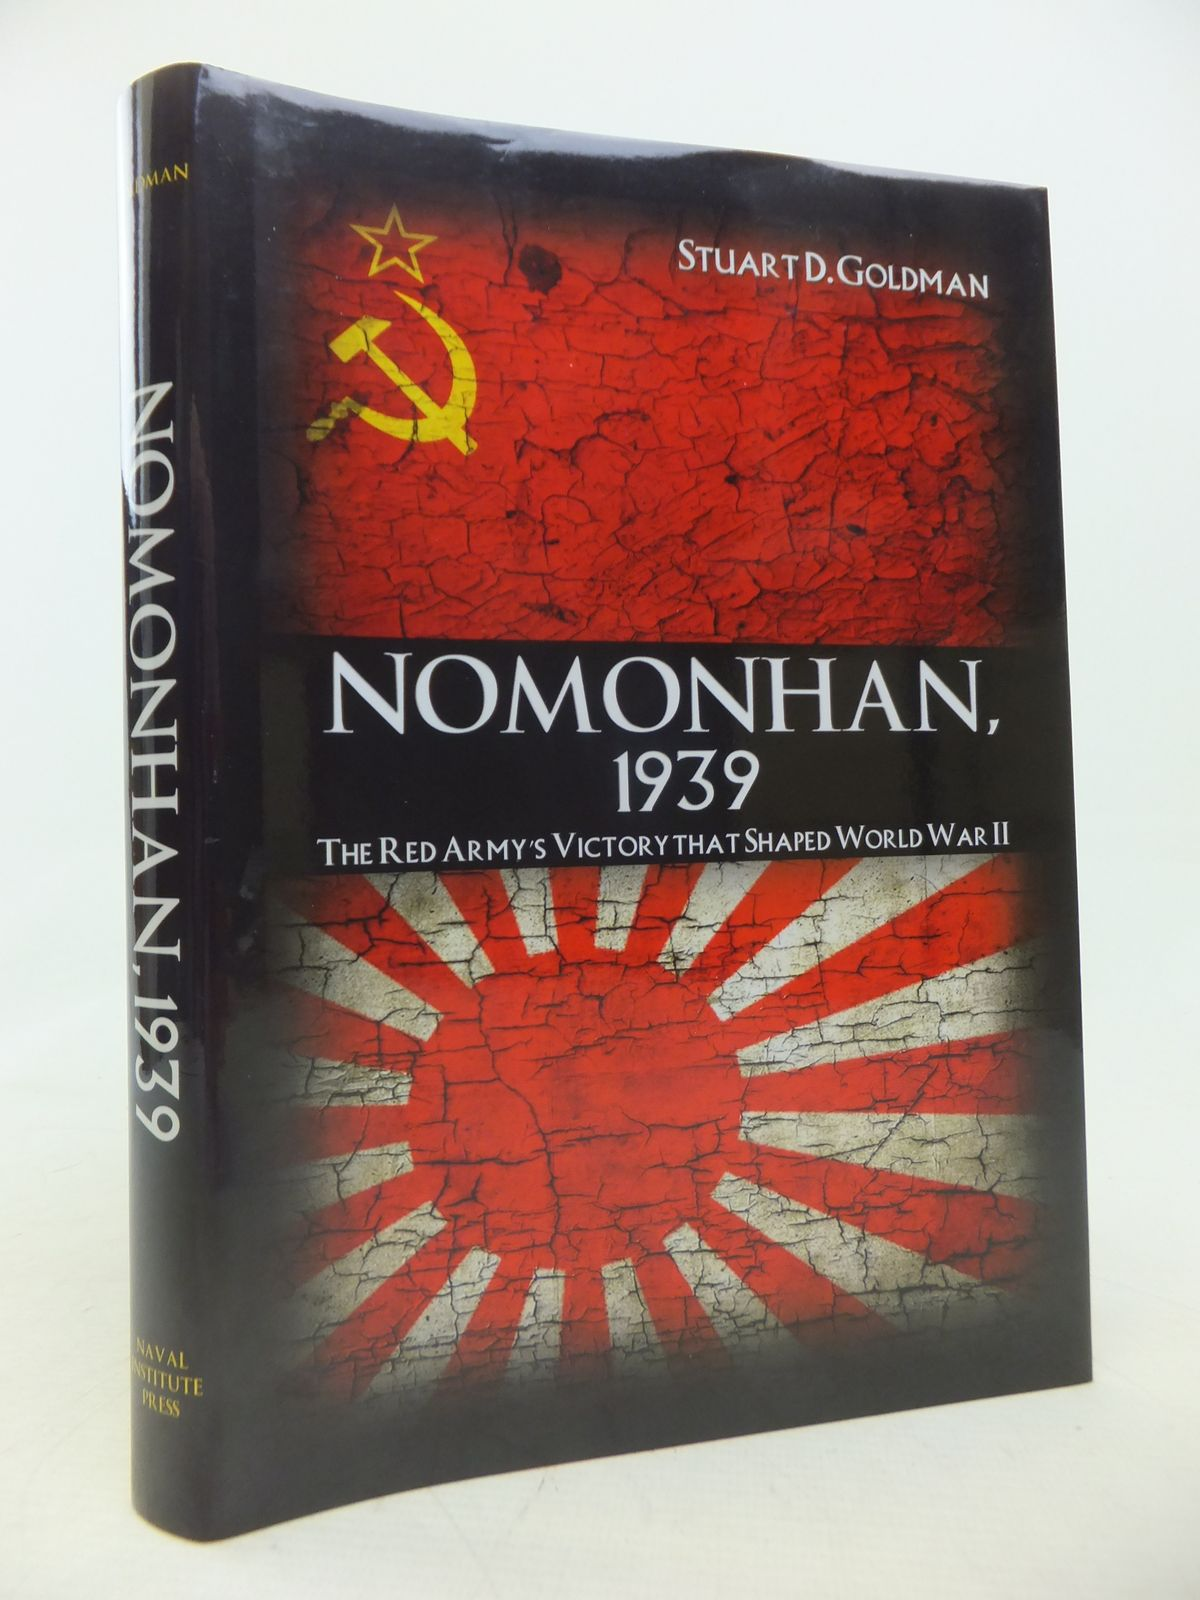 Photo of NOMONHAN, 1939: THE RED ARMY'S VICTORY THAT SHAPED WORLD WAR II written by Goldman, Stuart D. published by Naval Institute Press (STOCK CODE: 1809876)  for sale by Stella & Rose's Books